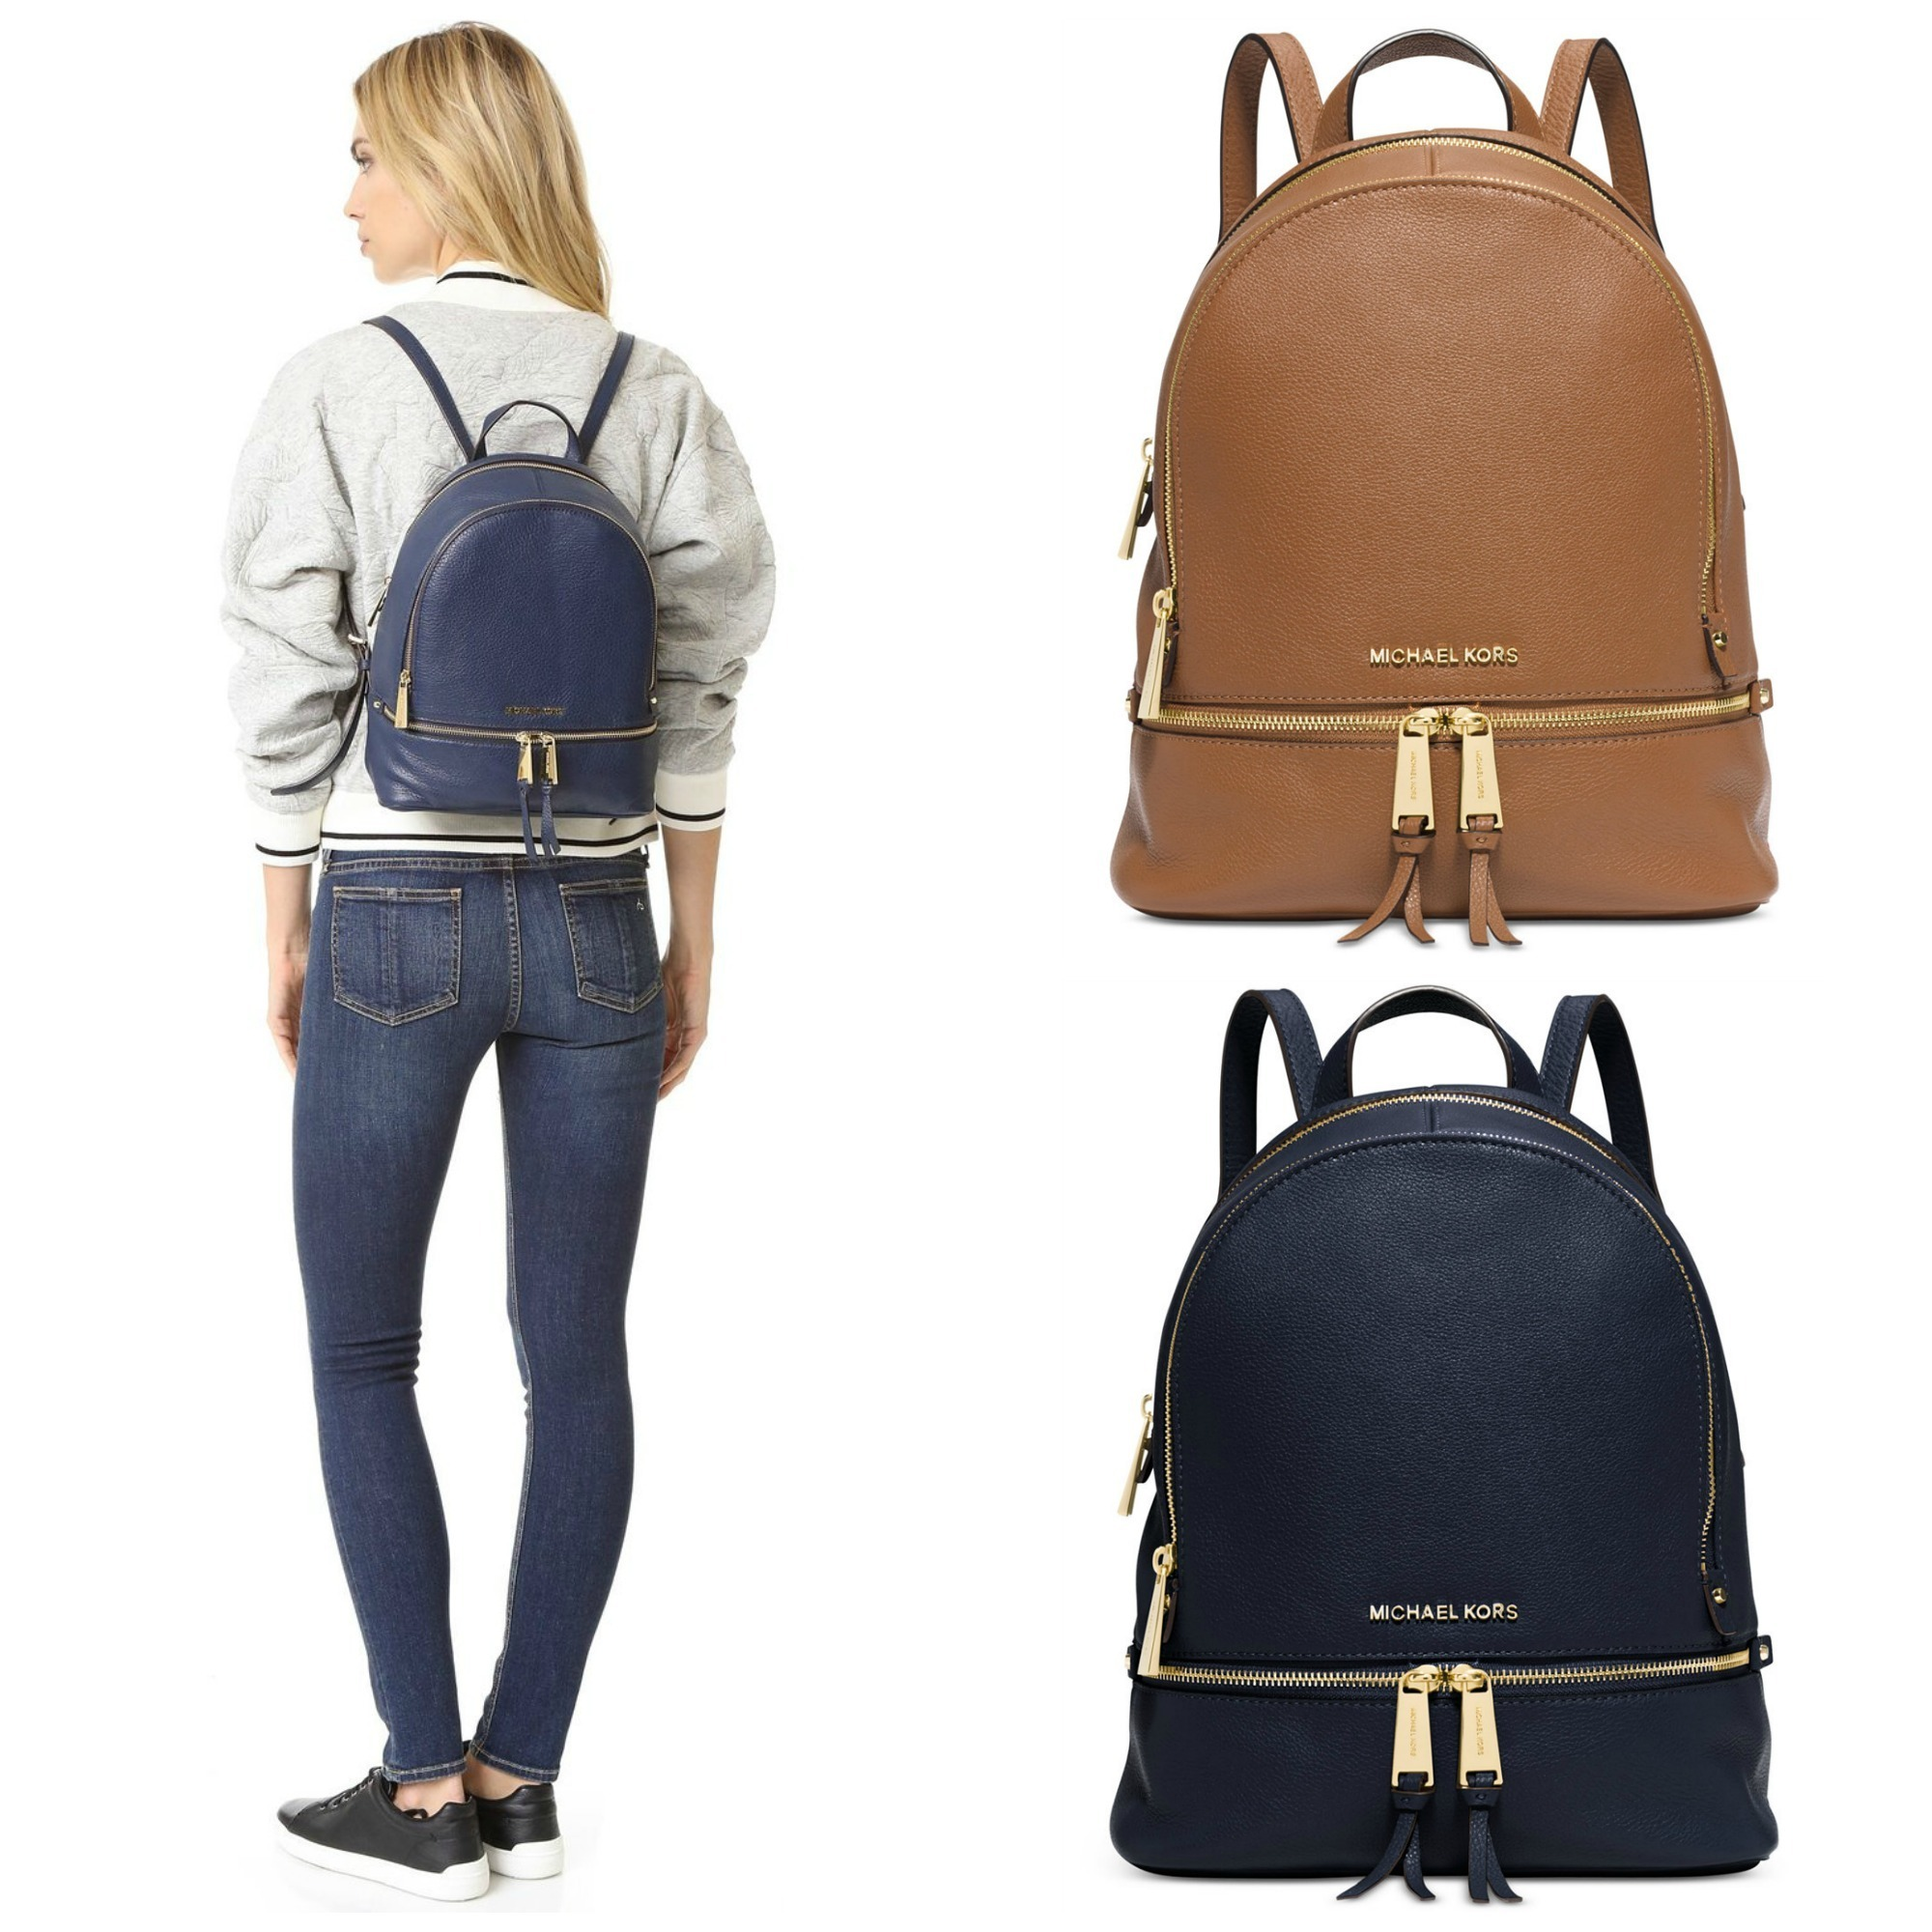 Michael Kors Backpacks MK MICHAEL KORS Rhea Zip Small Leather Backpack